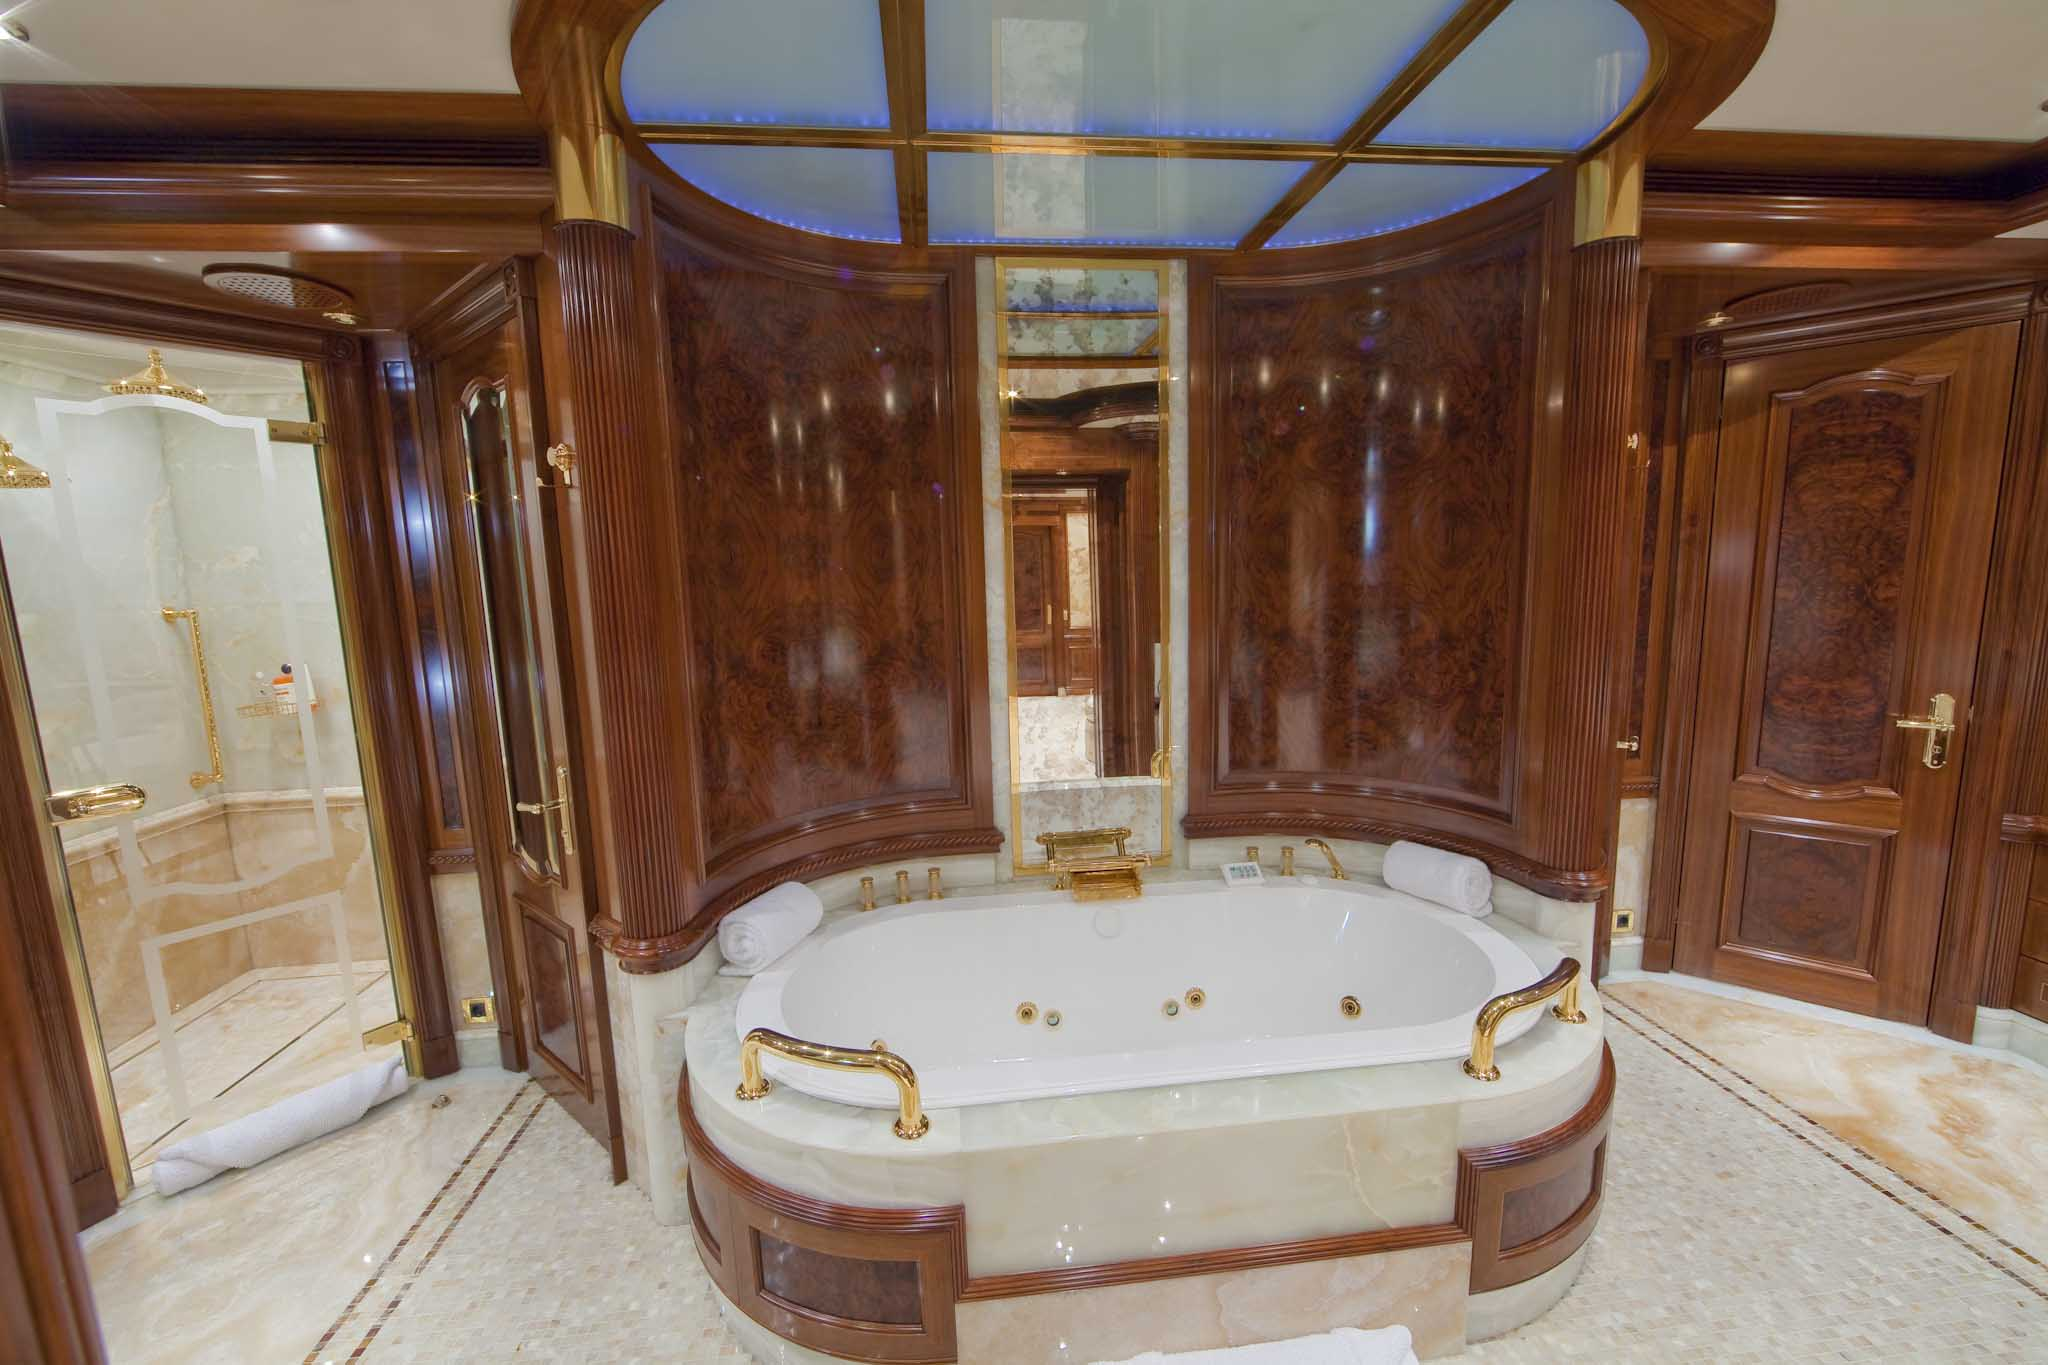 Bathroom Image Gallery     Luxury Yacht Browser   by CHARTERWORLD     Superyacht TITANIA   Master Suite Bathroom  From her elegant and elaborate  furnishings to the luxurious owner s cabin on the main deck  no